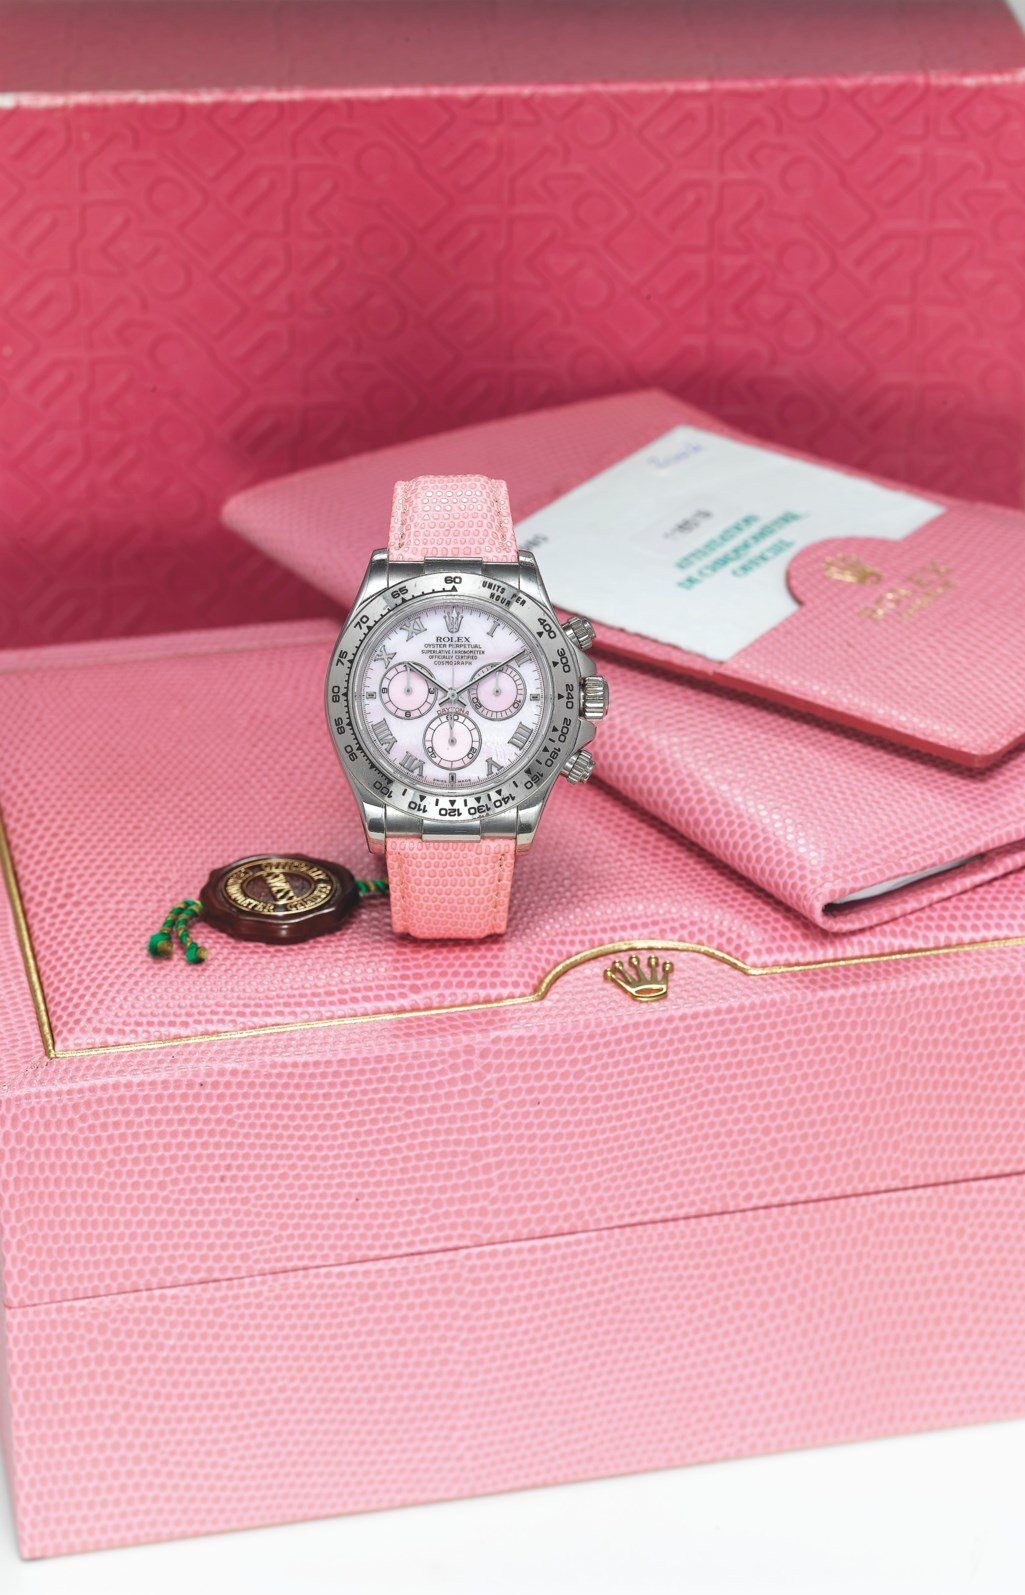 ROLEX, WHITE GOLD BEACH DAYTONA WITH PINK MOTHER-OF-PEARL DIAL, REF. 116519